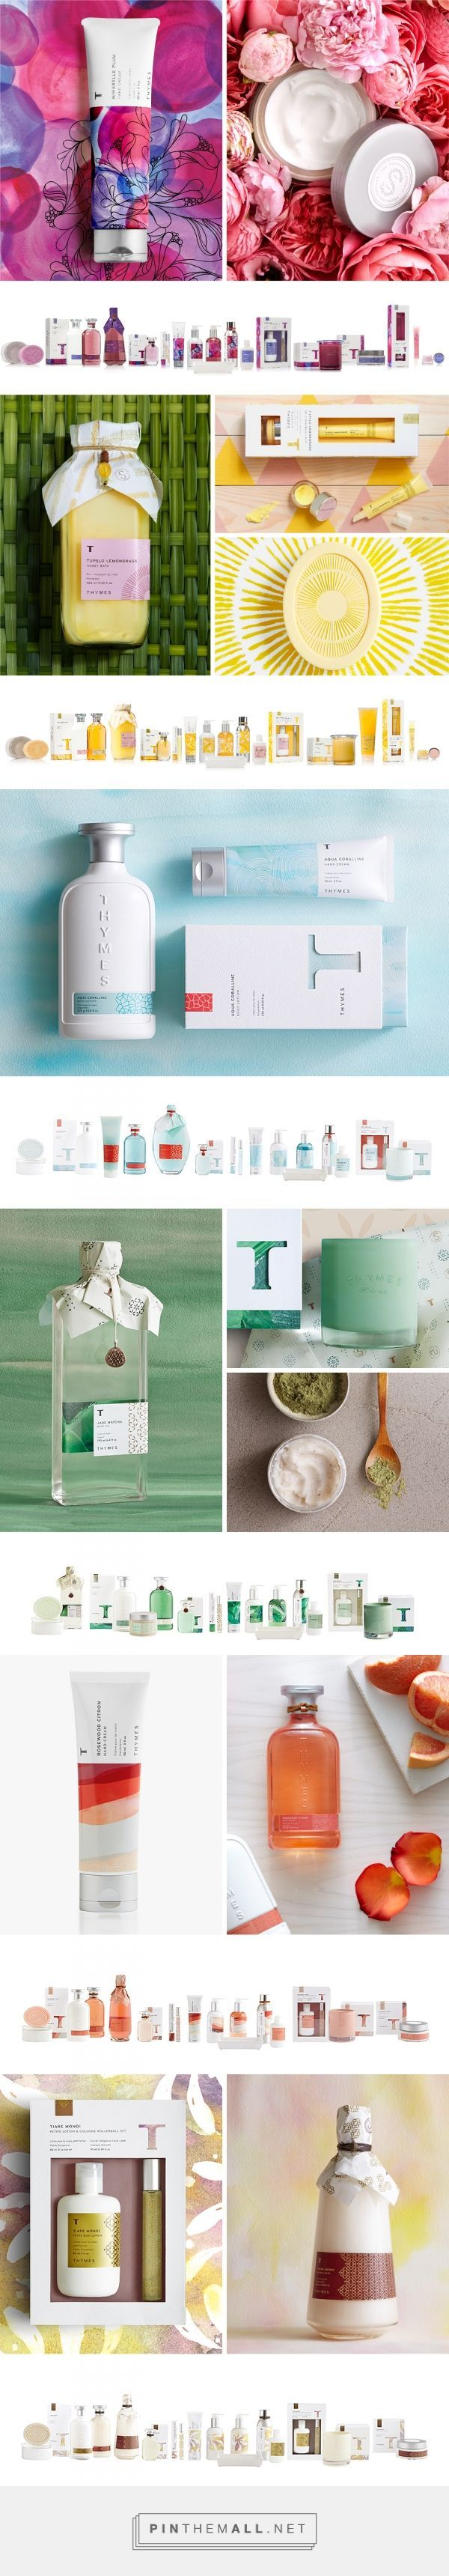 Thymes Studio Collection by Cue A Brand Design Company curated by Packaging Diva PD. Look at these great packaging assortments for Thymes fragrance collections.